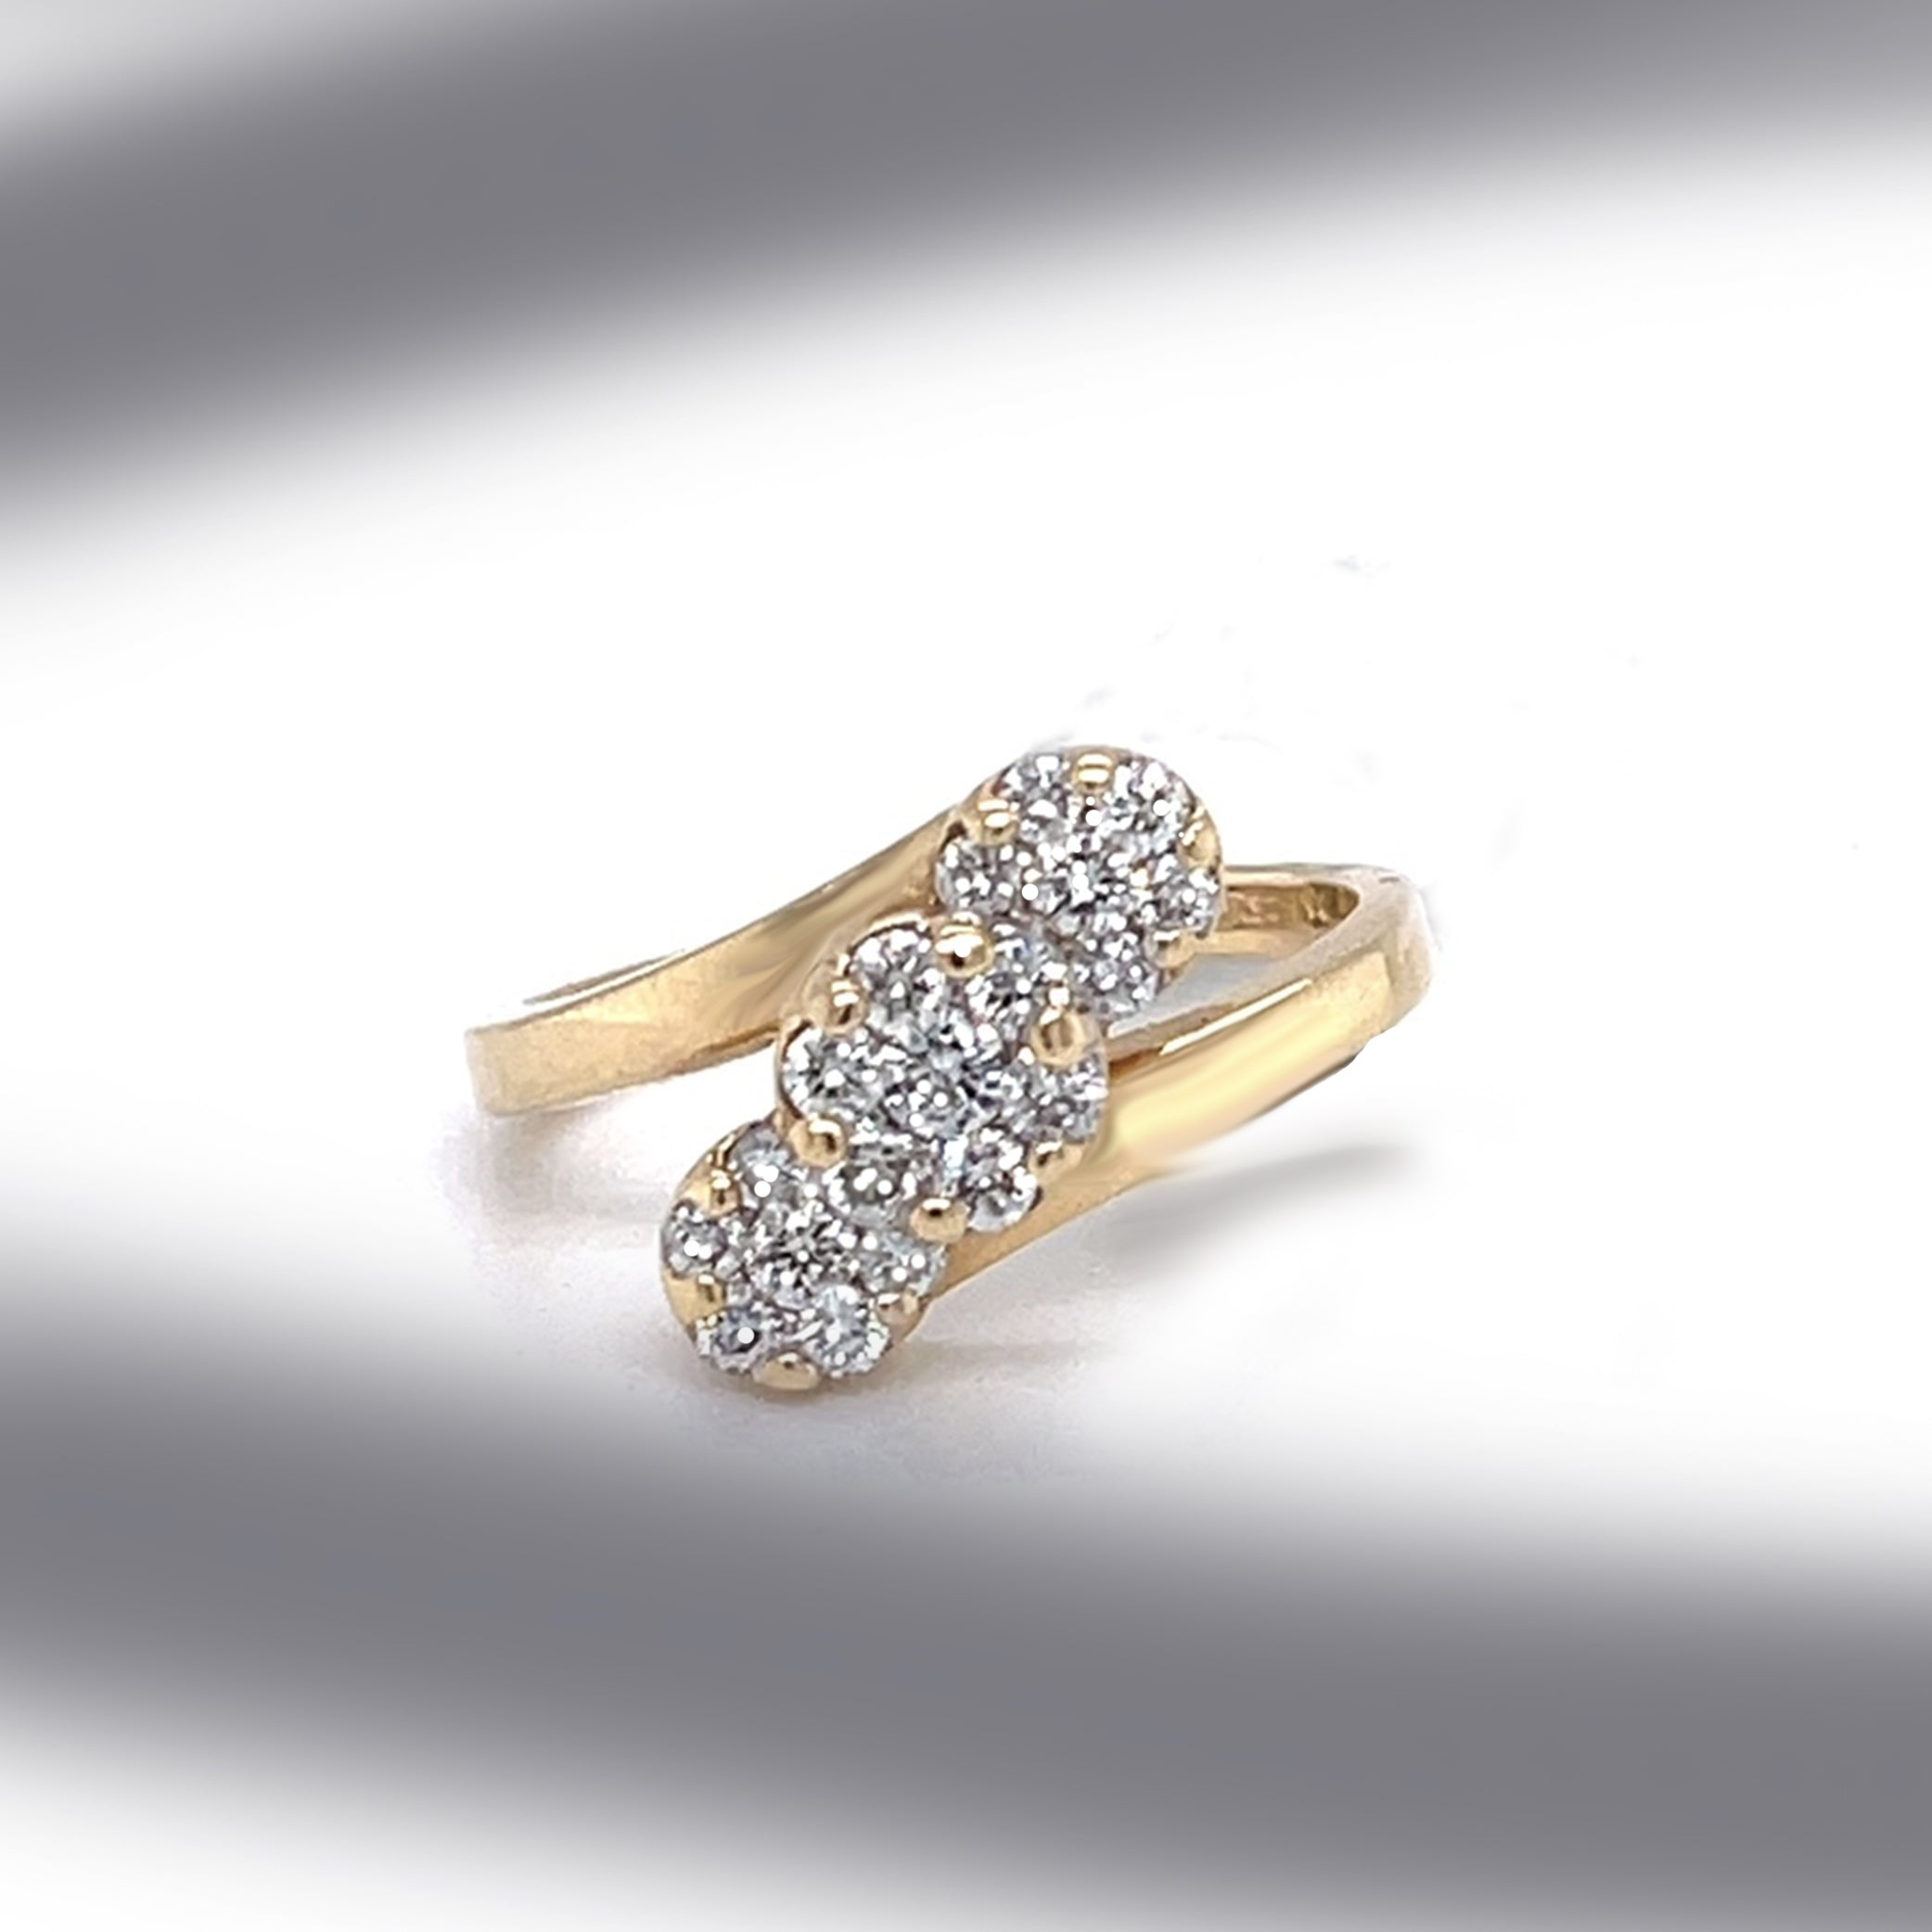 Estate Three Illusion Set Diamond Clusters in 14K Yellow Gold Ring